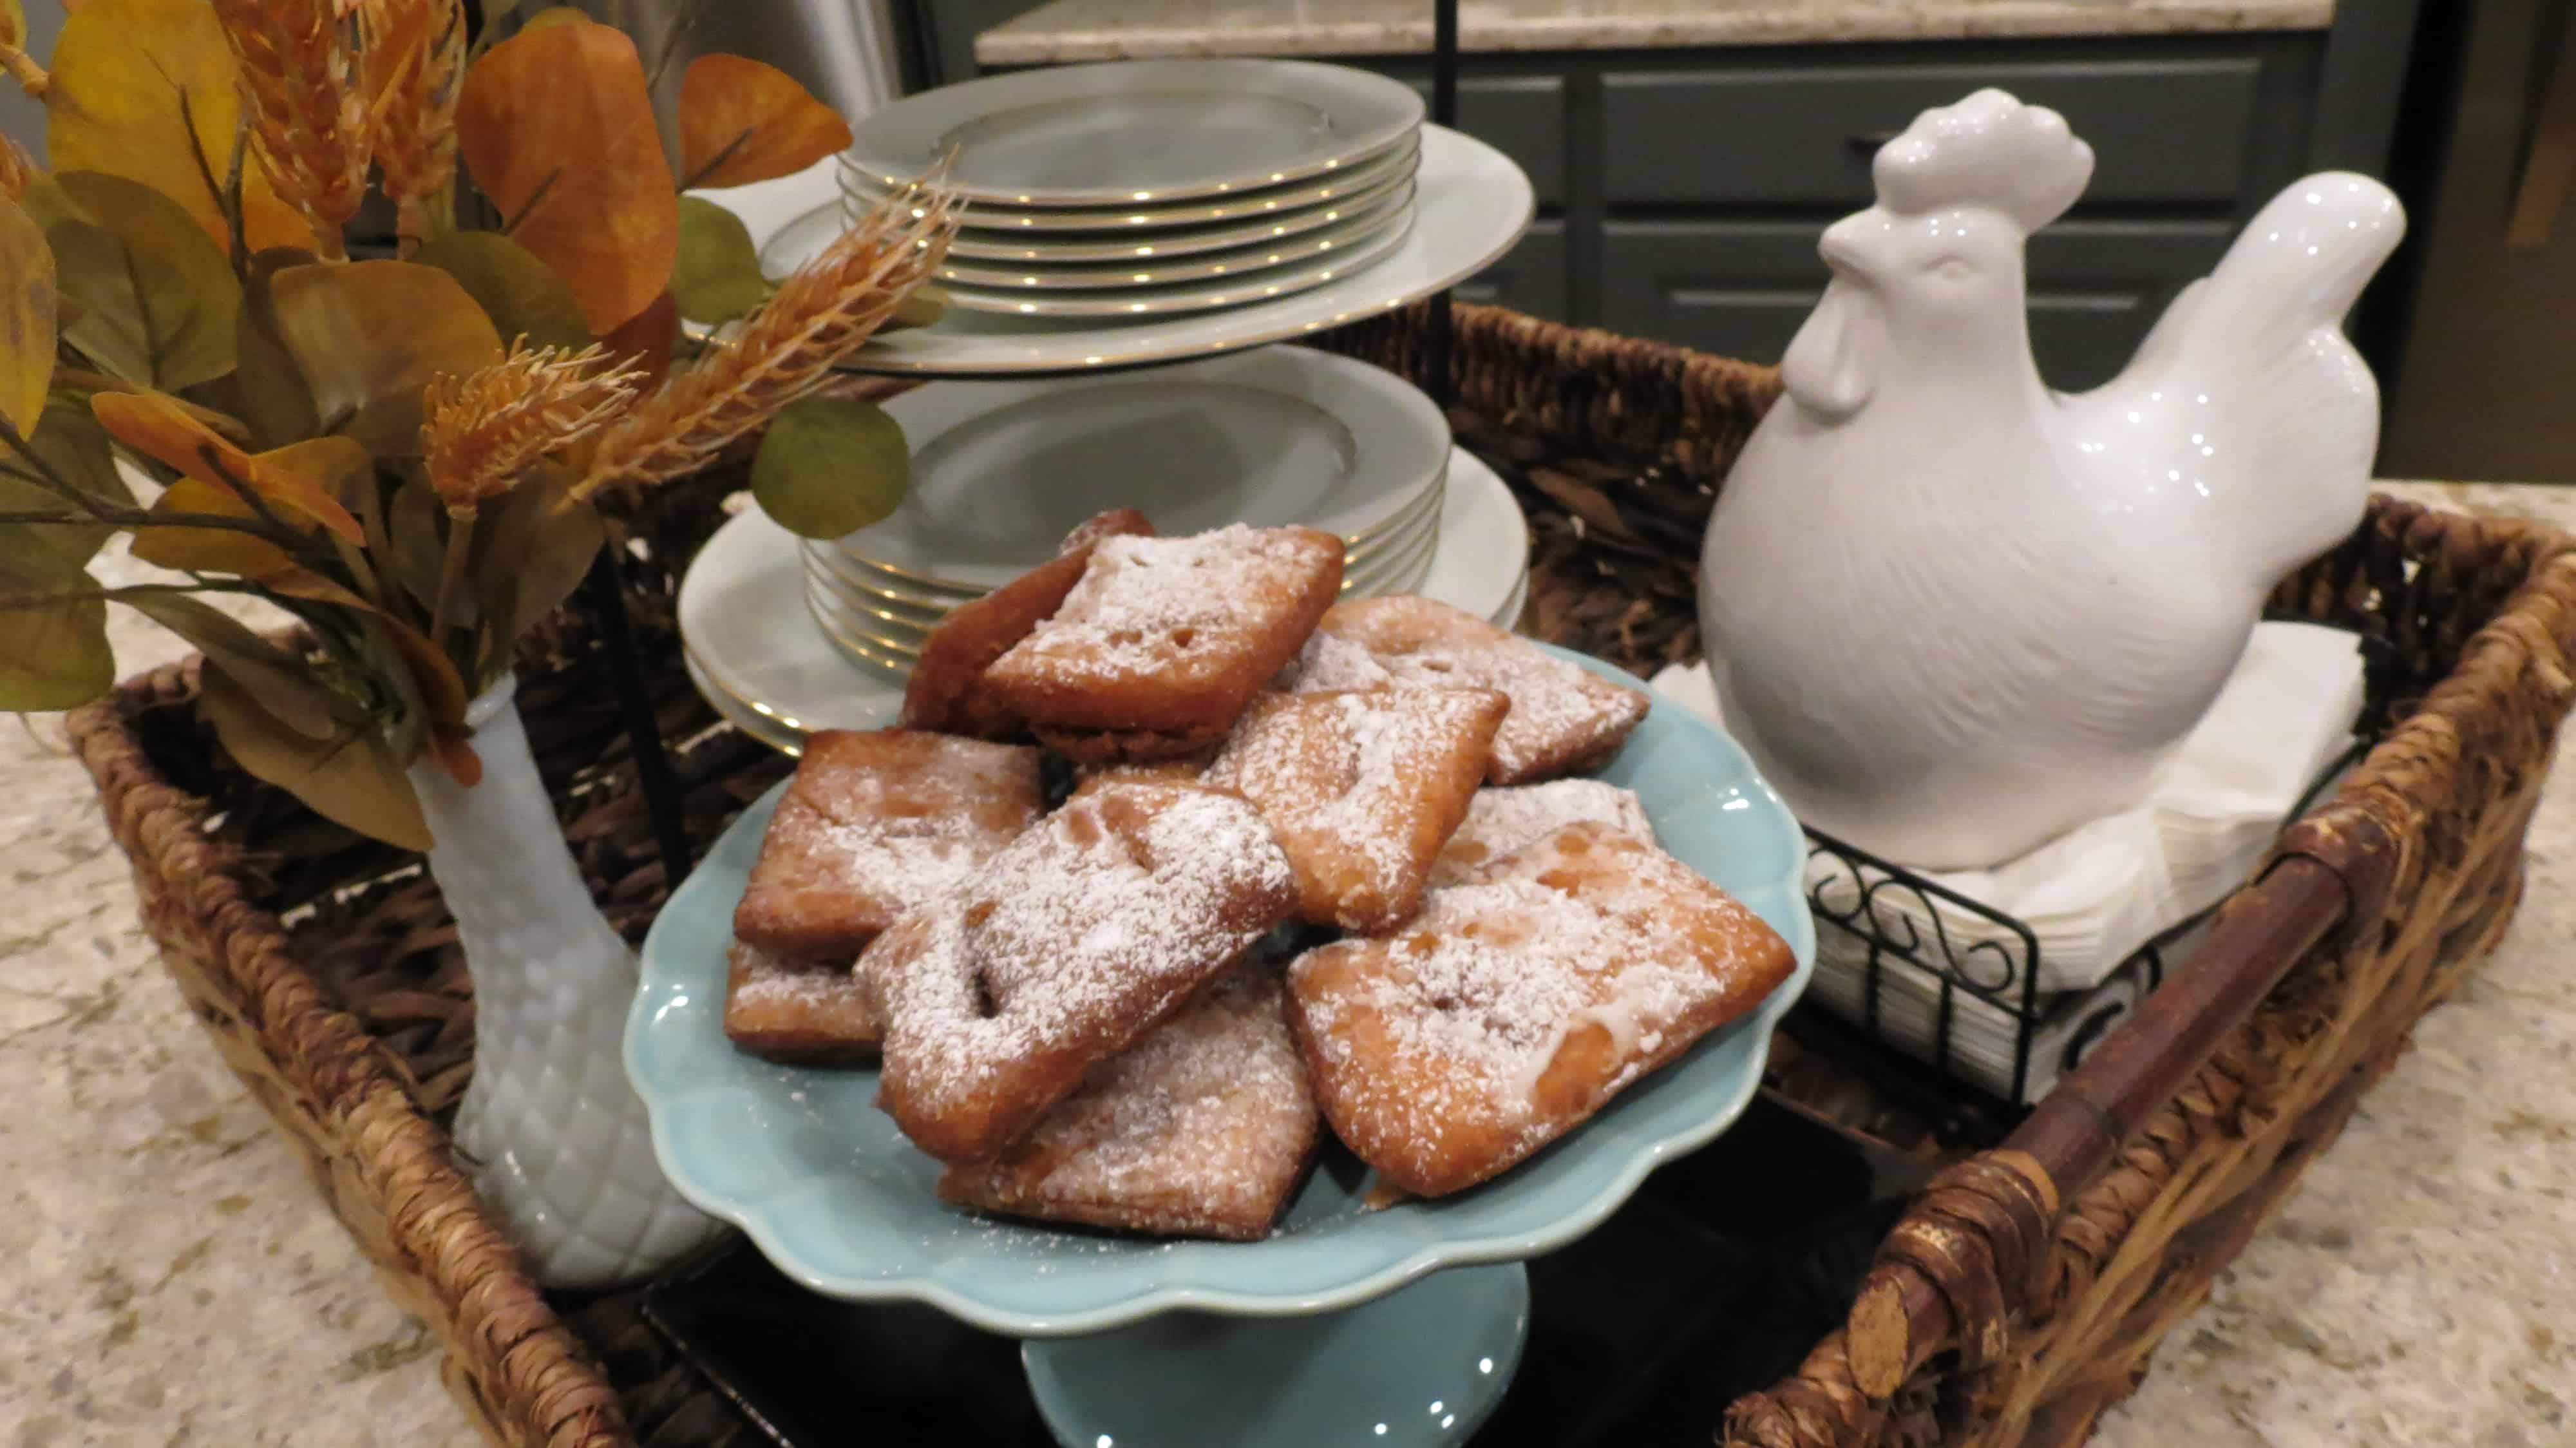 Croquesignoles Or French Donuts